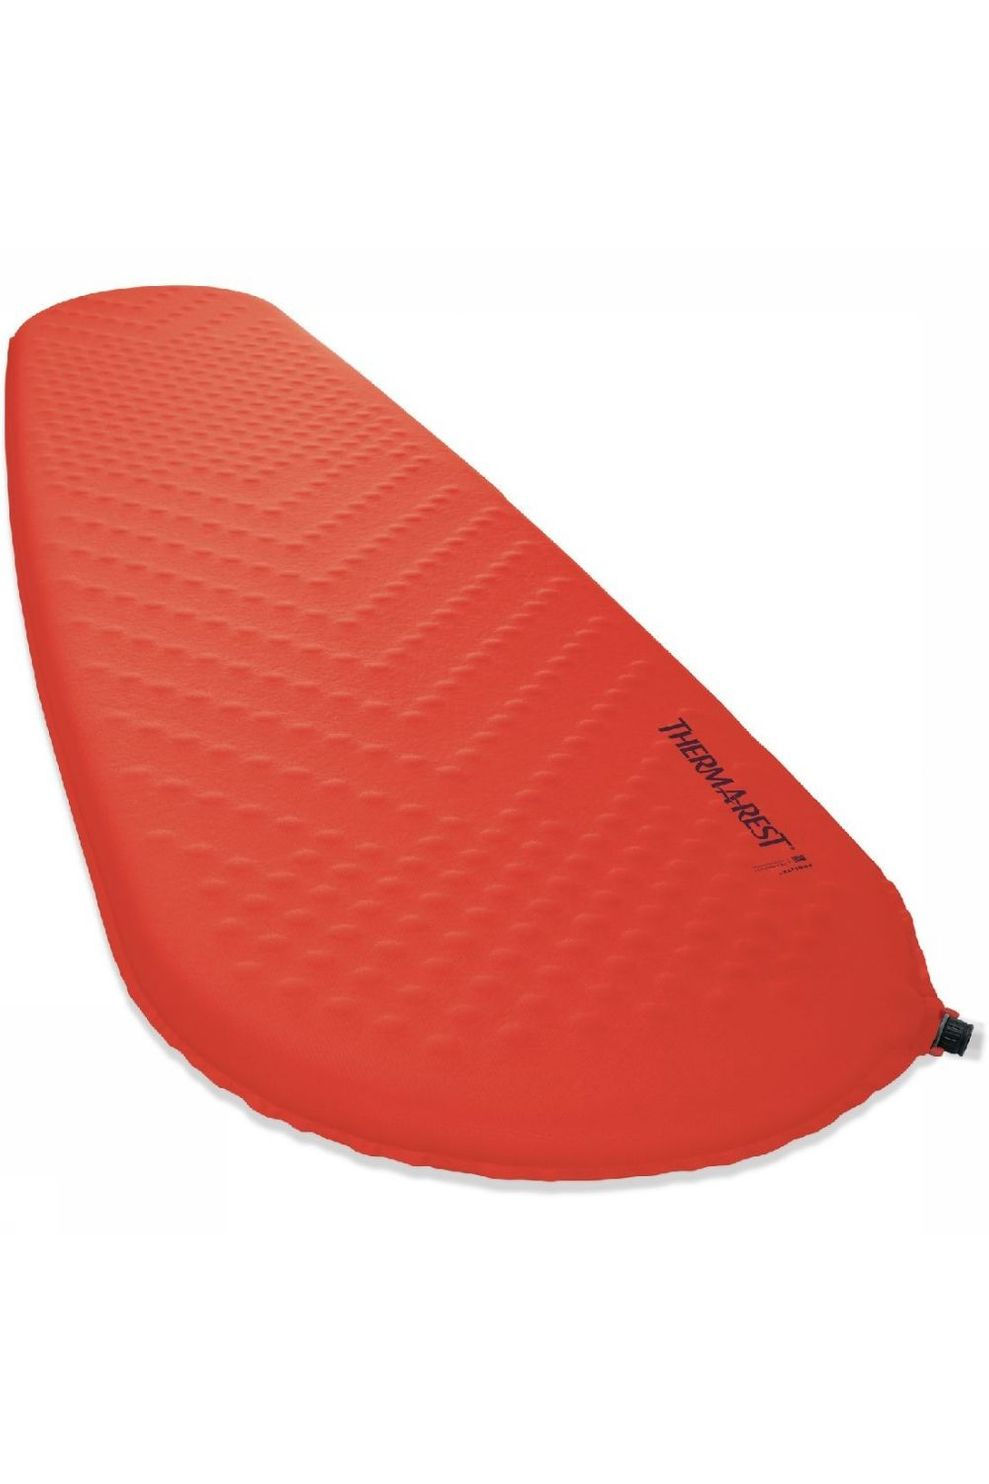 Therm-a-Rest Slaapmat Prolite Wr voor dames - Rood